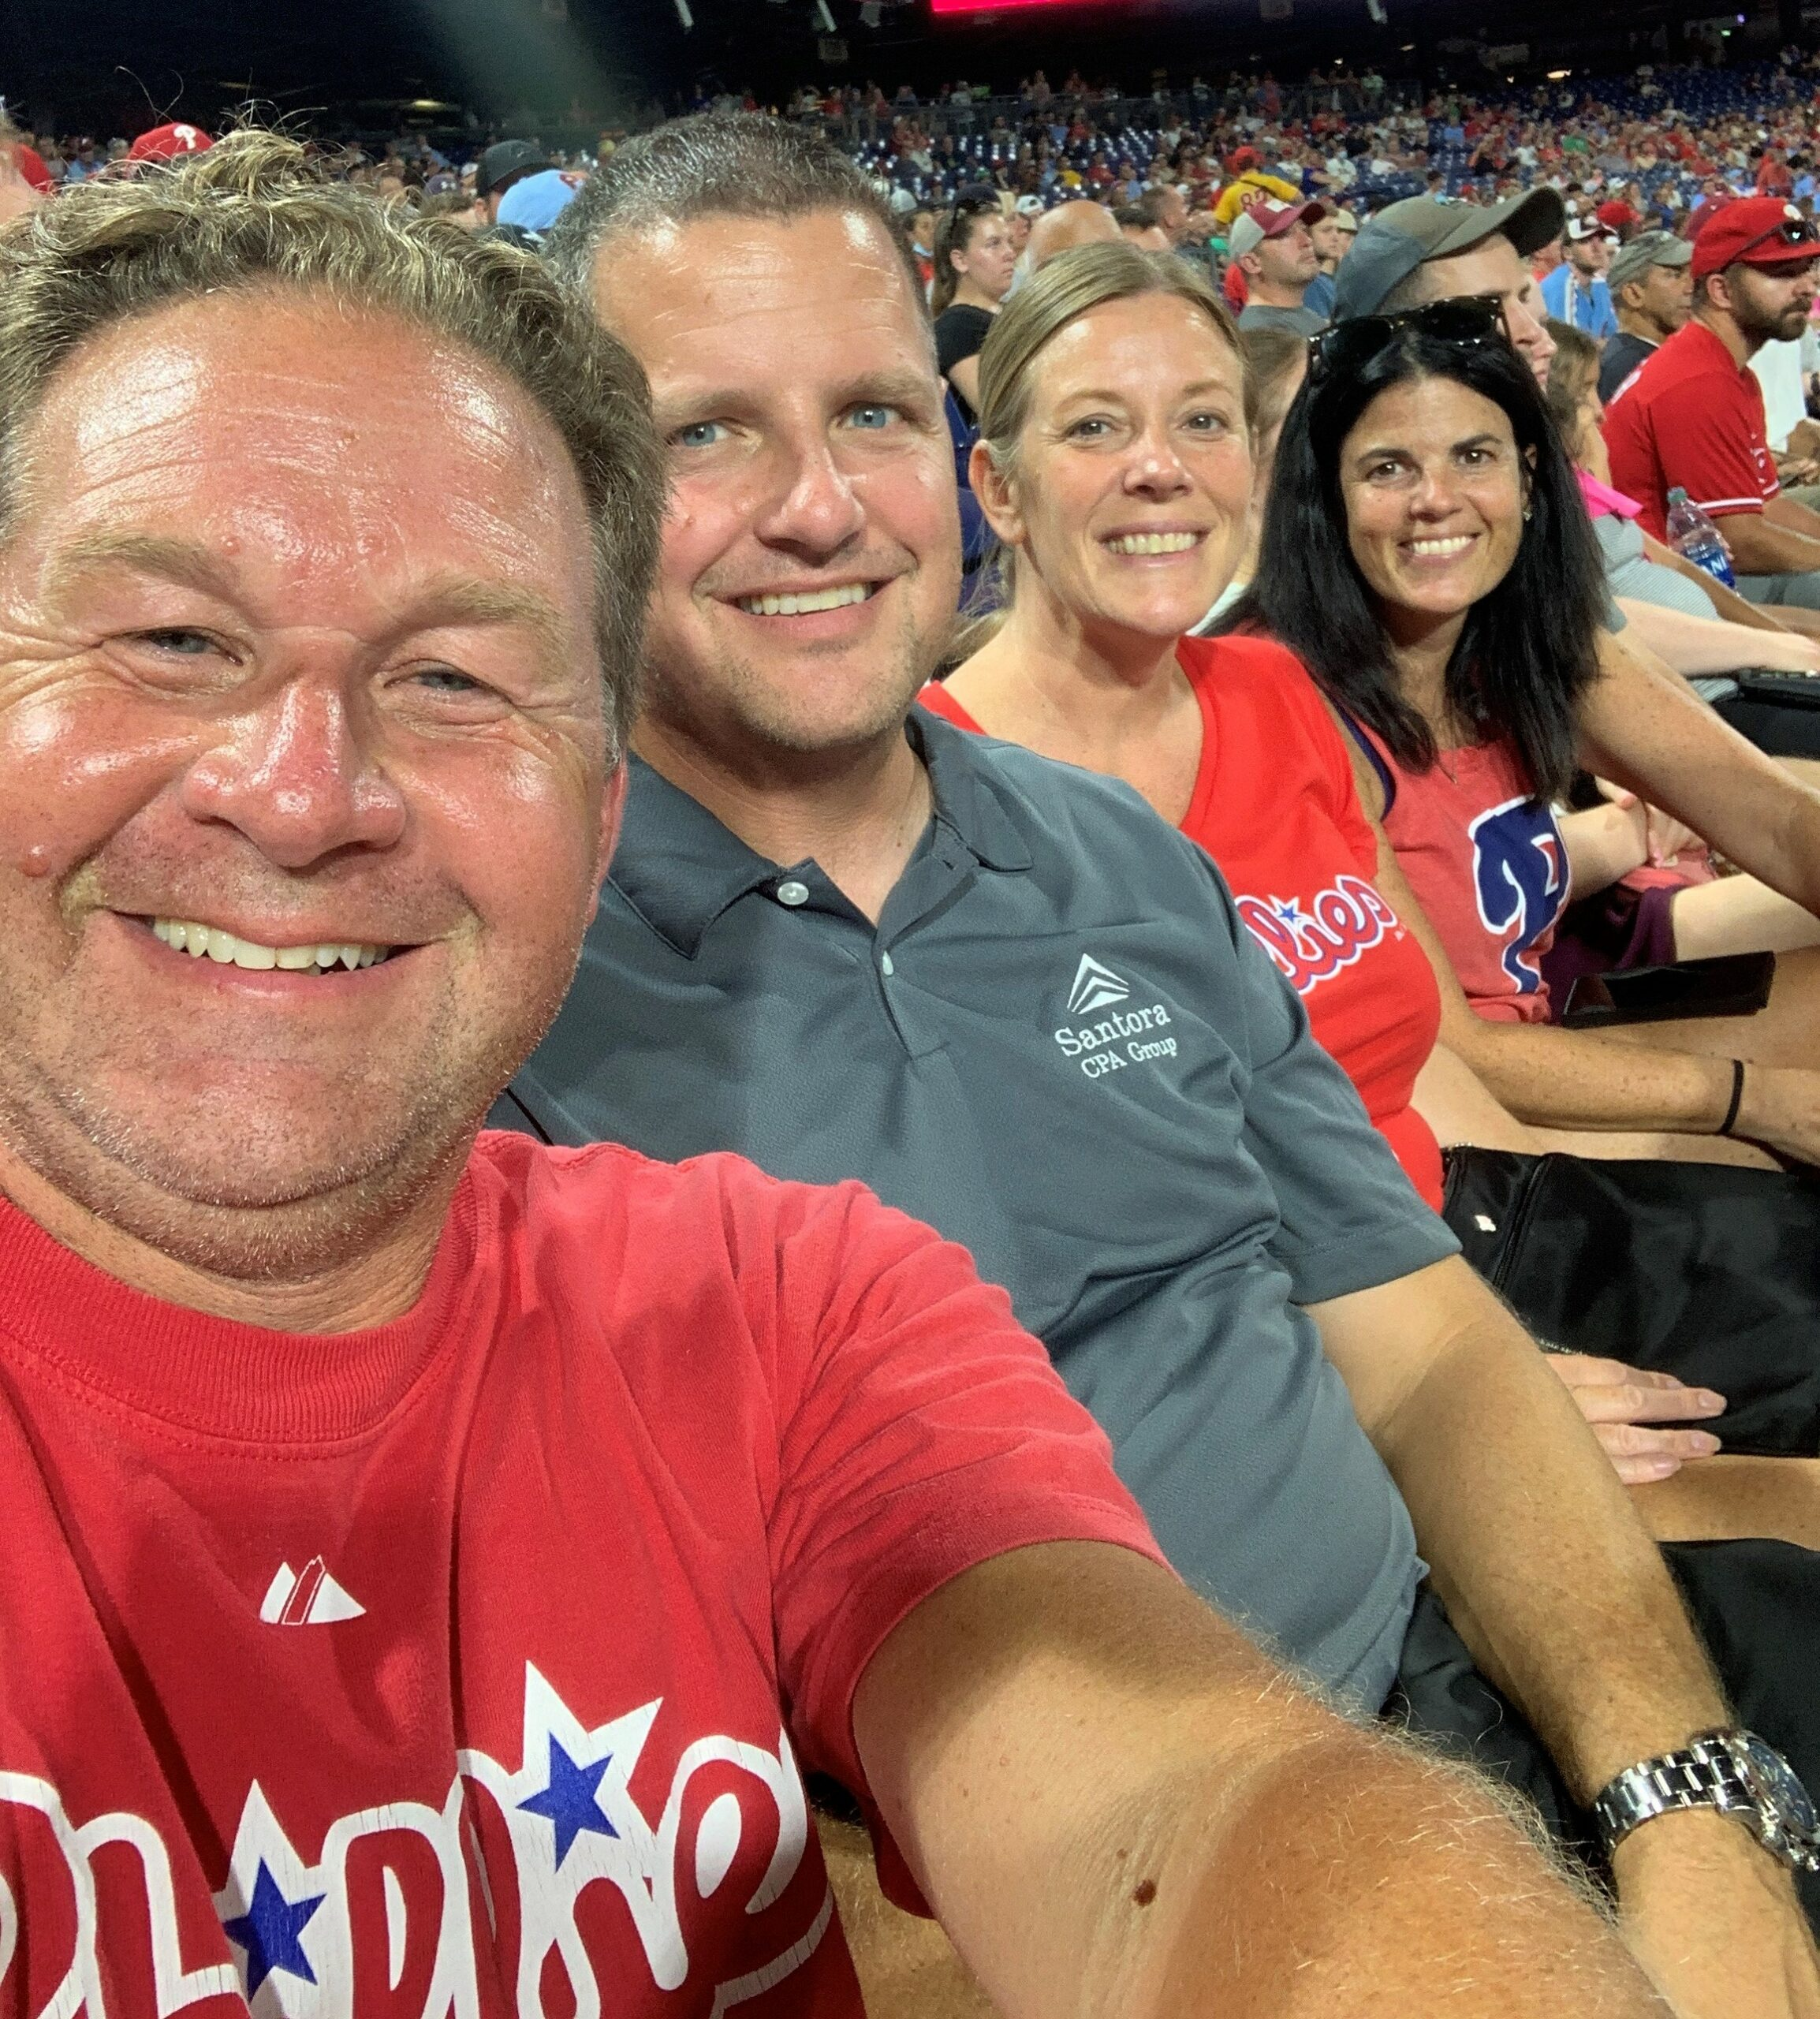 Company-Provided Phillies Tickets on August 25th